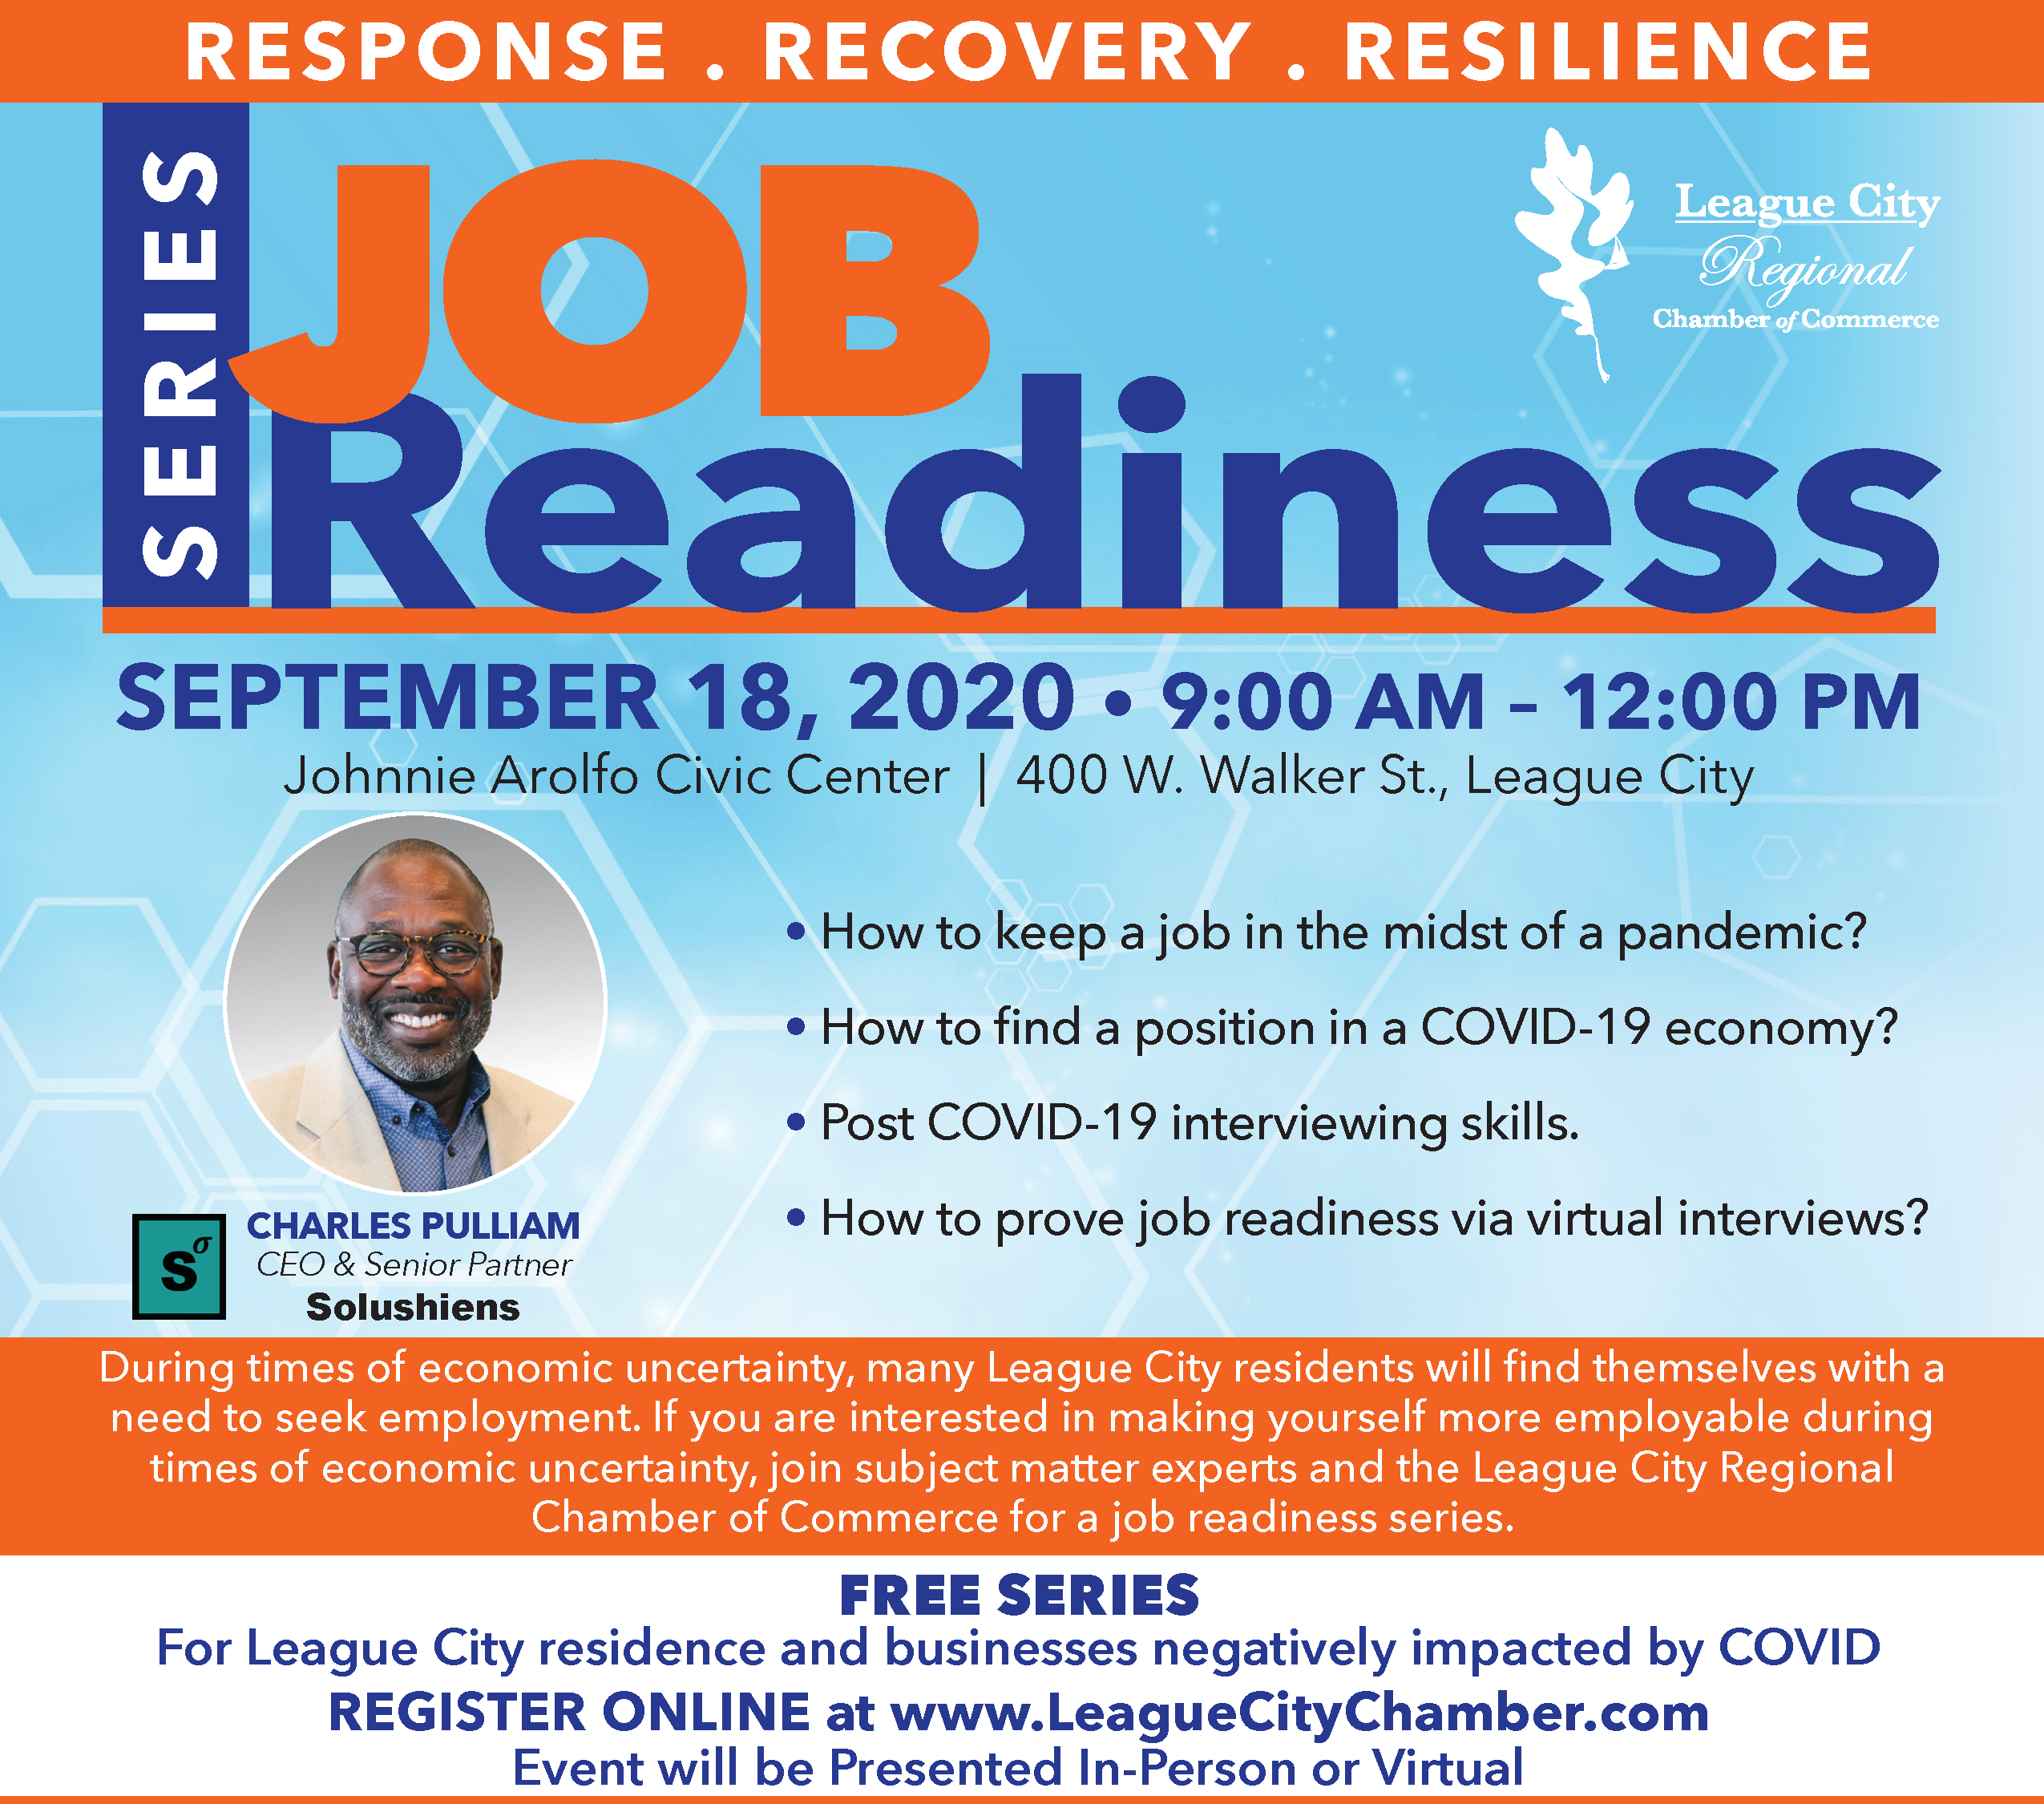 Image for ANNOUNCEMENT: League City Chamber of Commerce to host job readiness seminar